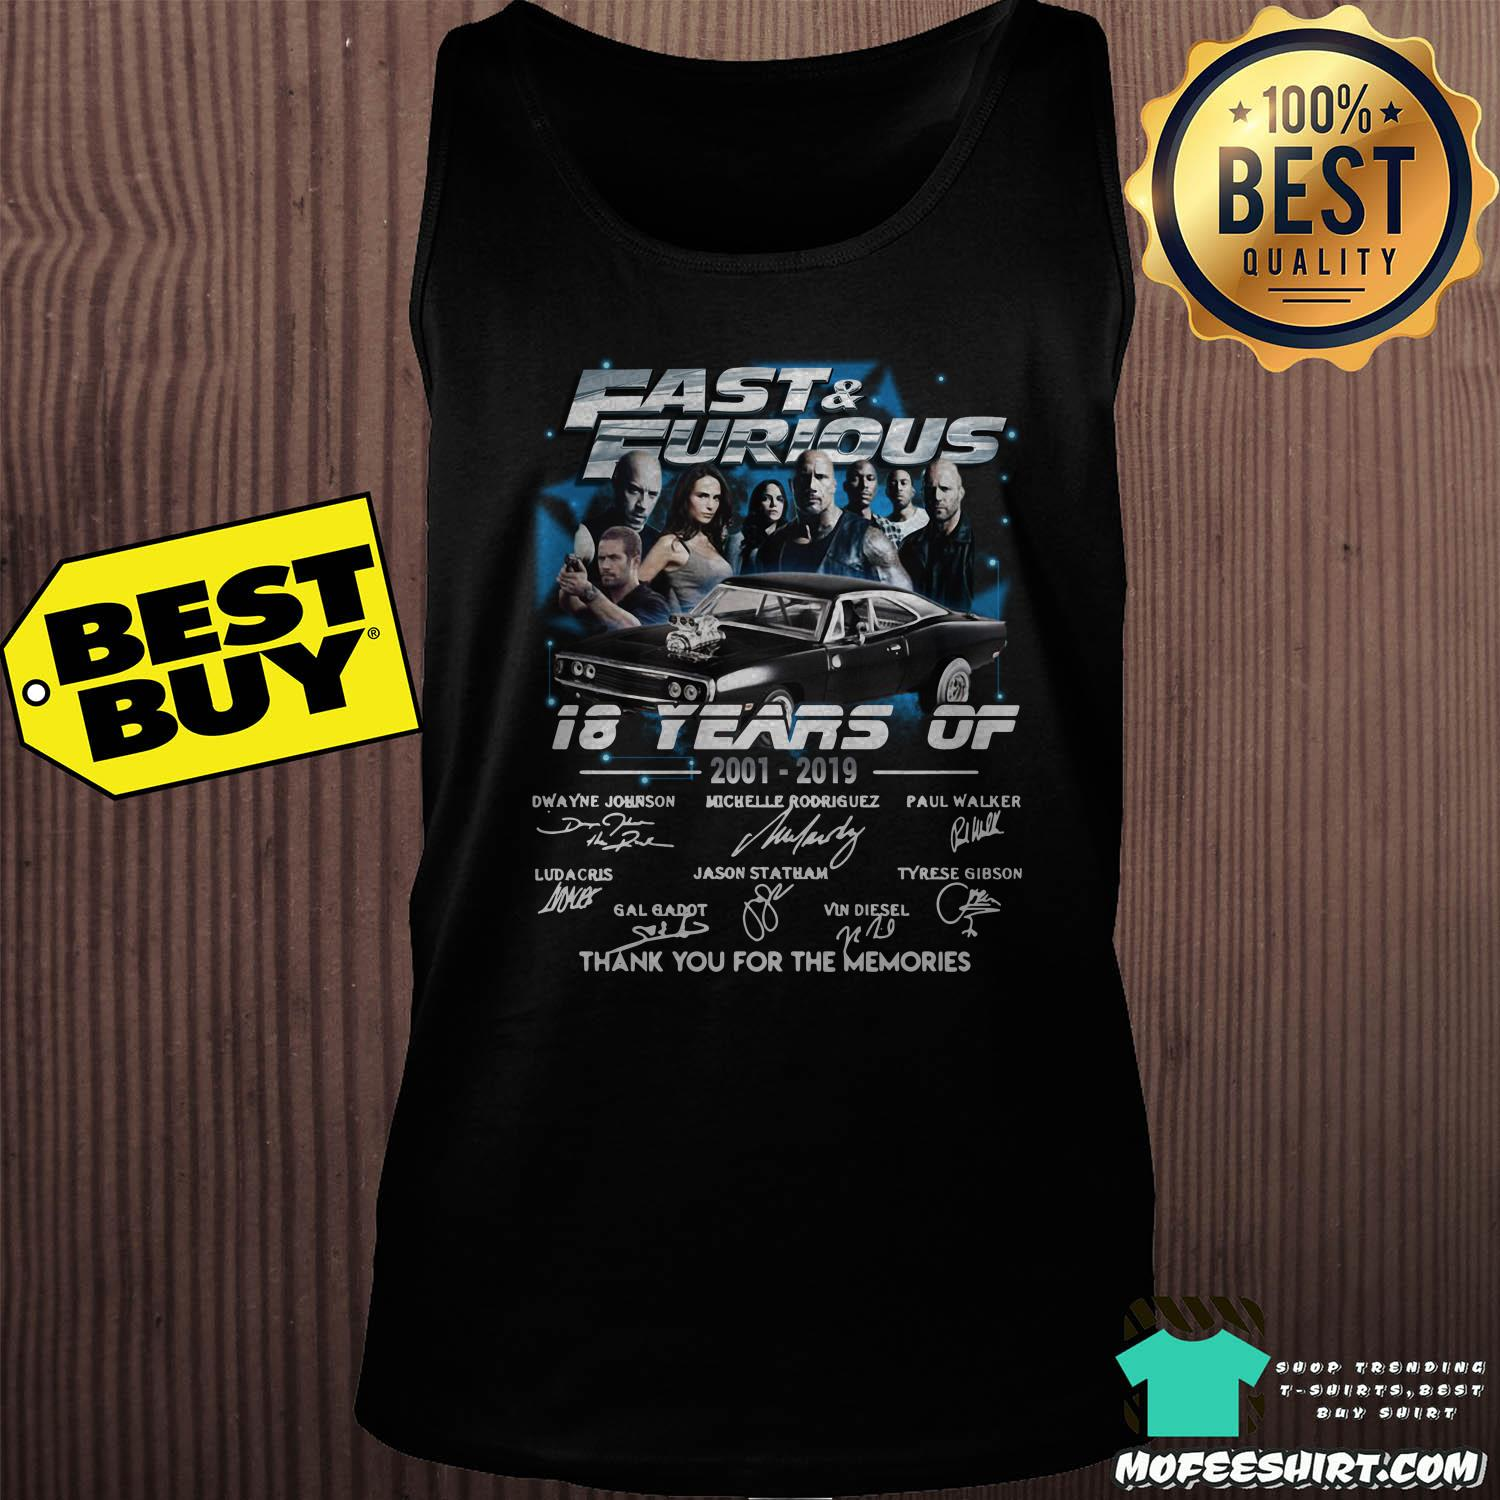 fast and furious 18 years of 2001 2019 thank you for the memories signature tank top sweater - Fast And Furious 18 Years Of 2001-2019 Thank You For The Memories Signature Shirt Sweater